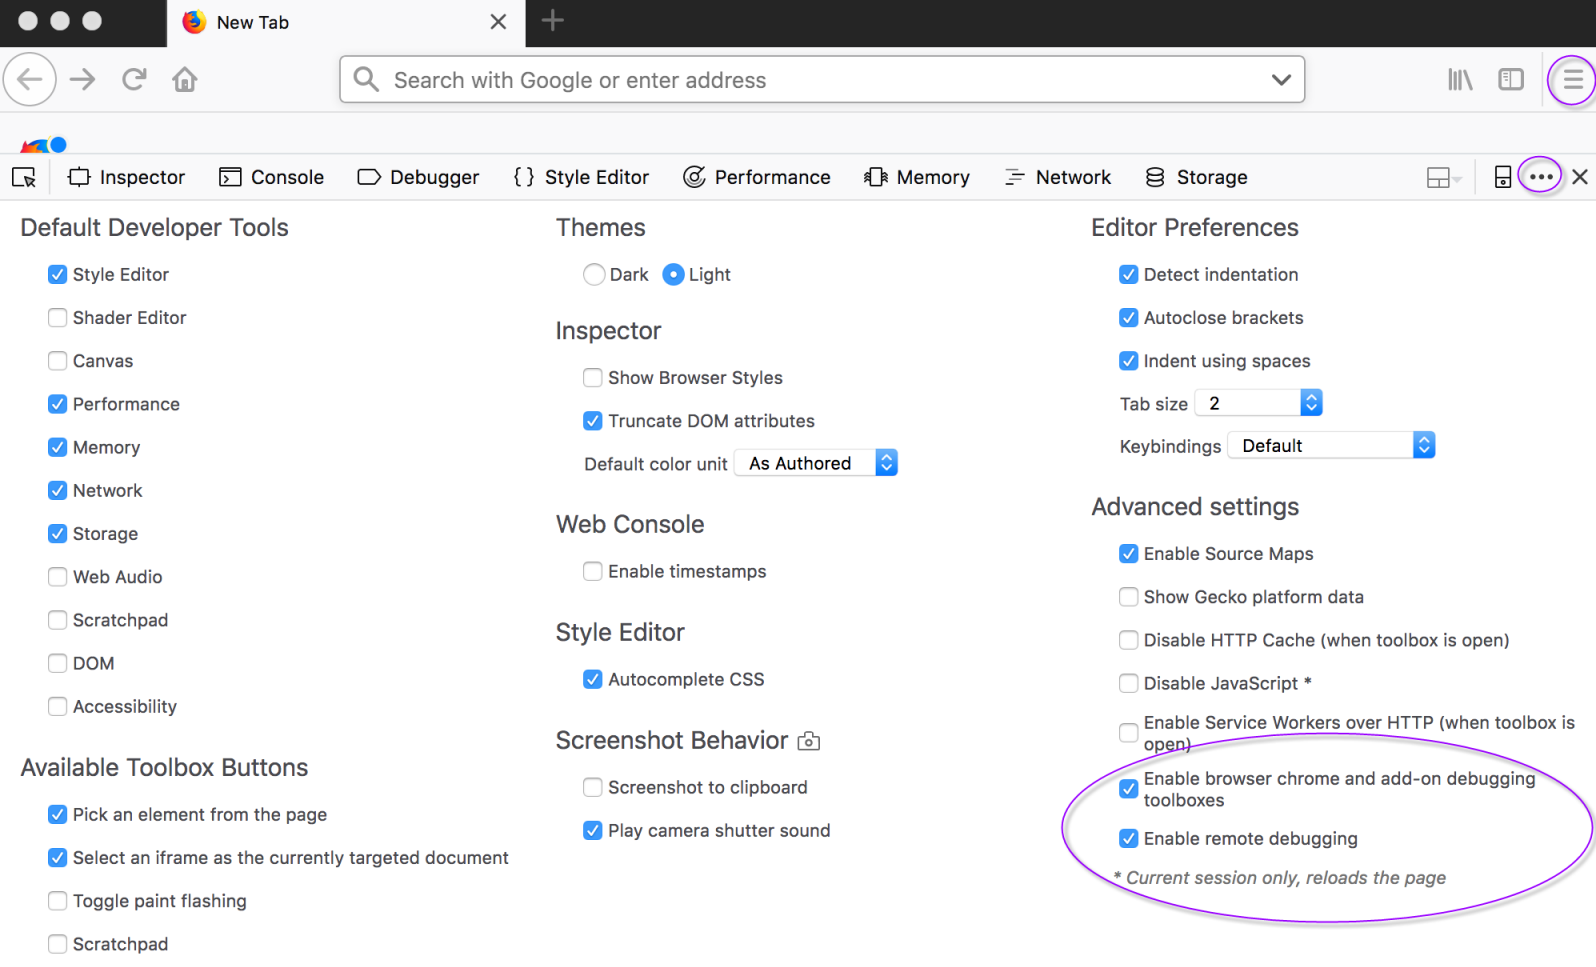 Selecting the Enable remote debugging and Enable browser chrome add-on debugging checkboxes